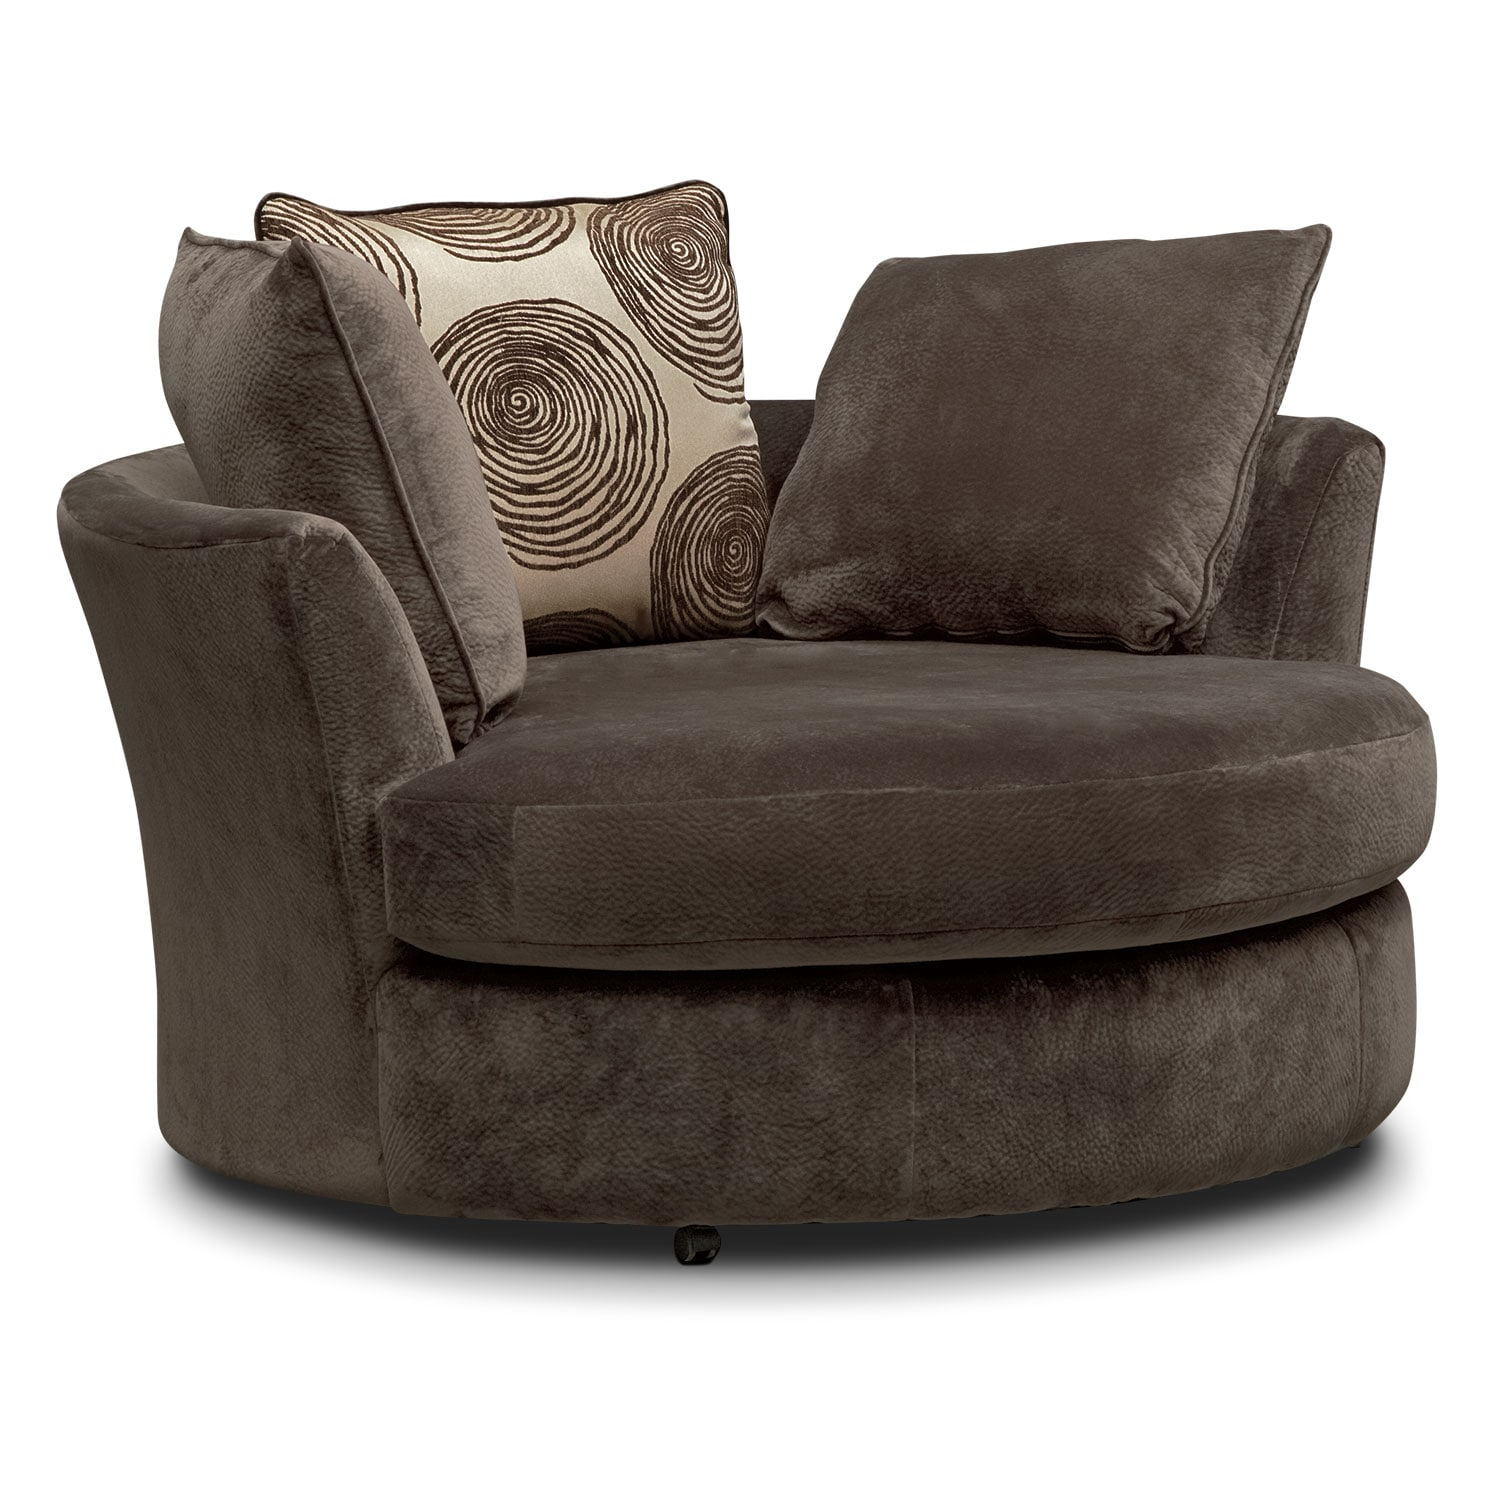 Living Room Furniture   Cordelle Swivel Chair   Chocolate. Hover To Zoom